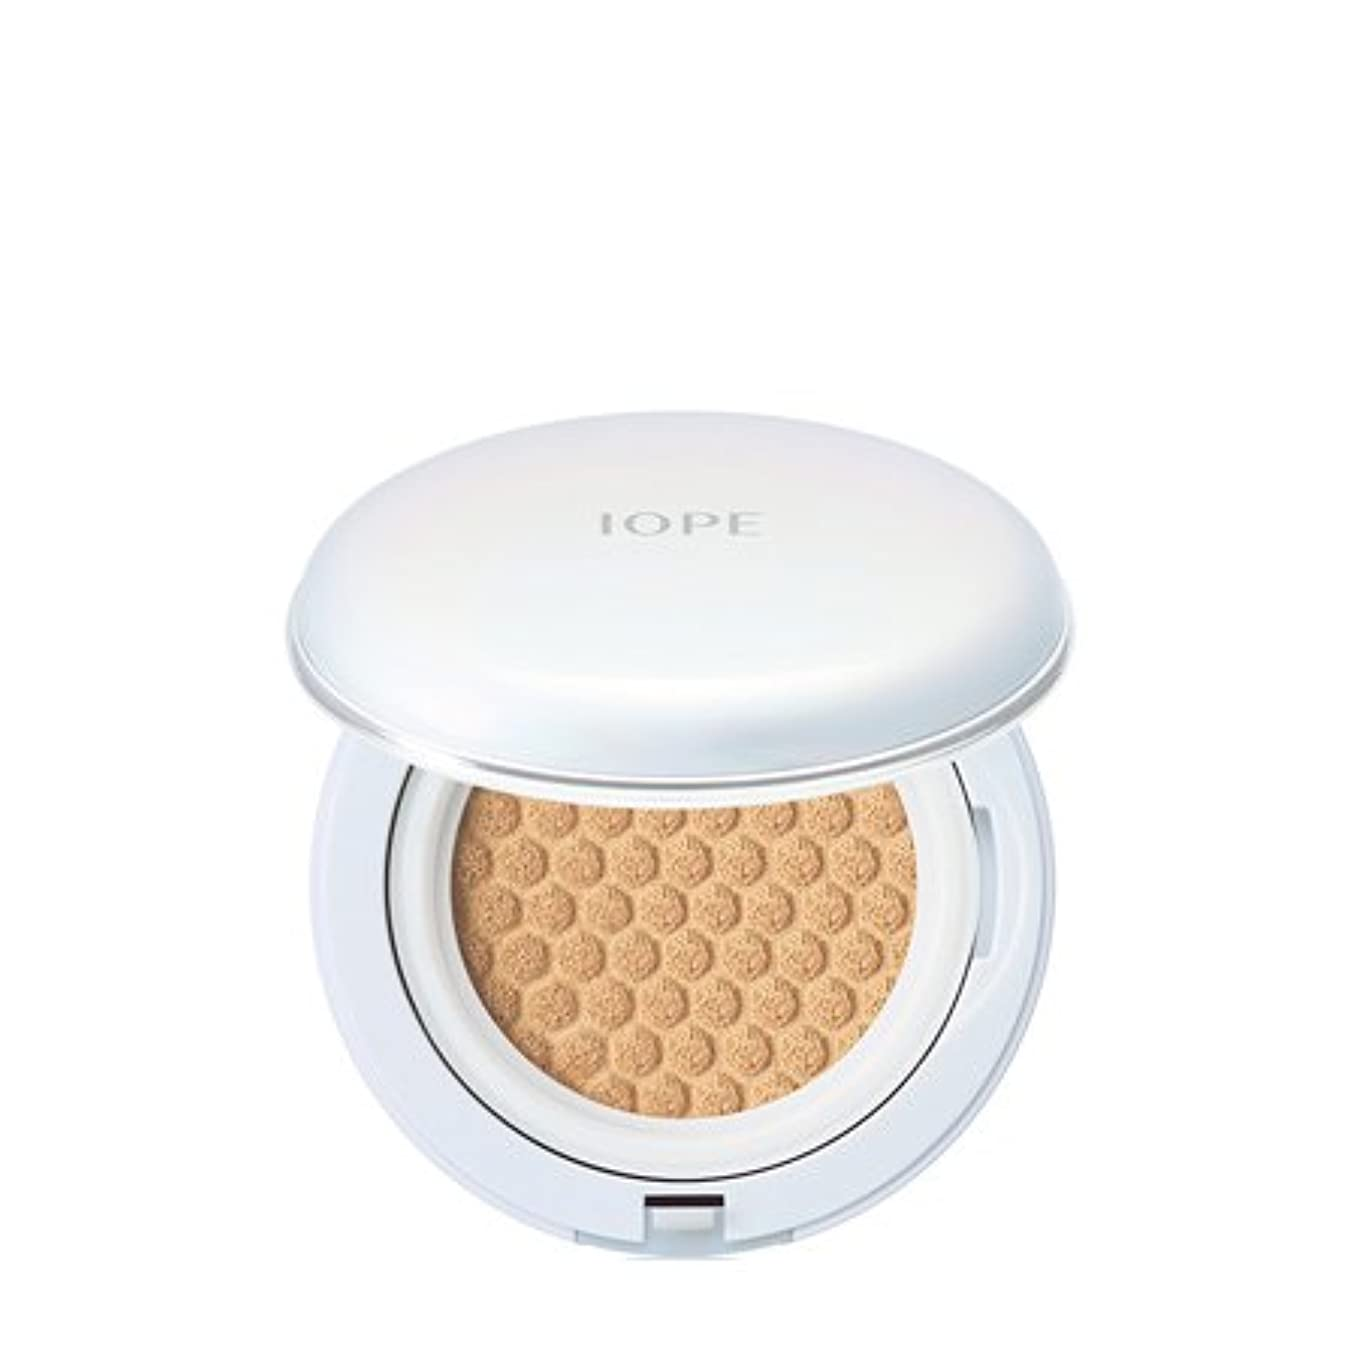 [2017 All New] IOPE Air Cushion * Natural * 15g + Refill 15g/アイオペ エア クッション * ナチュラル * 15g + リフィル 15g (#23 Beige...